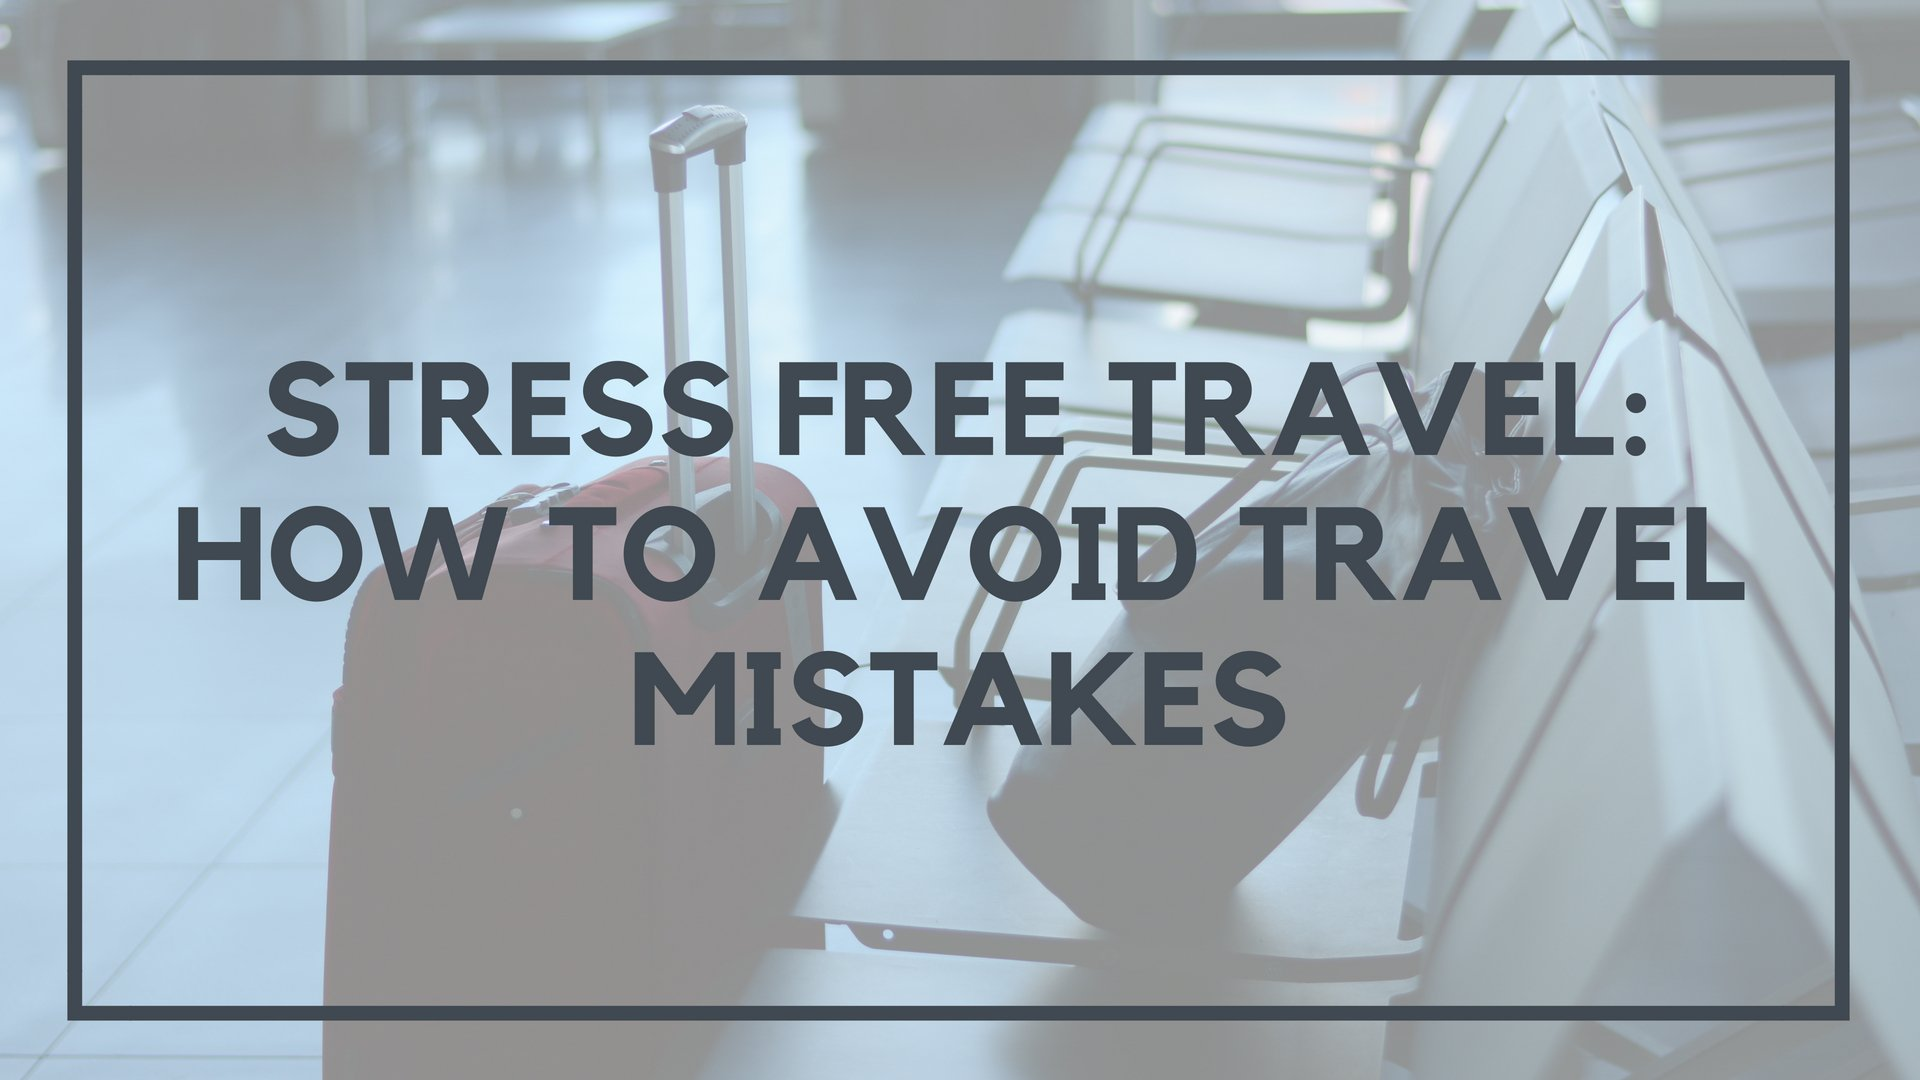 Stress Free Travel: How to Avoid Travel Mistakes